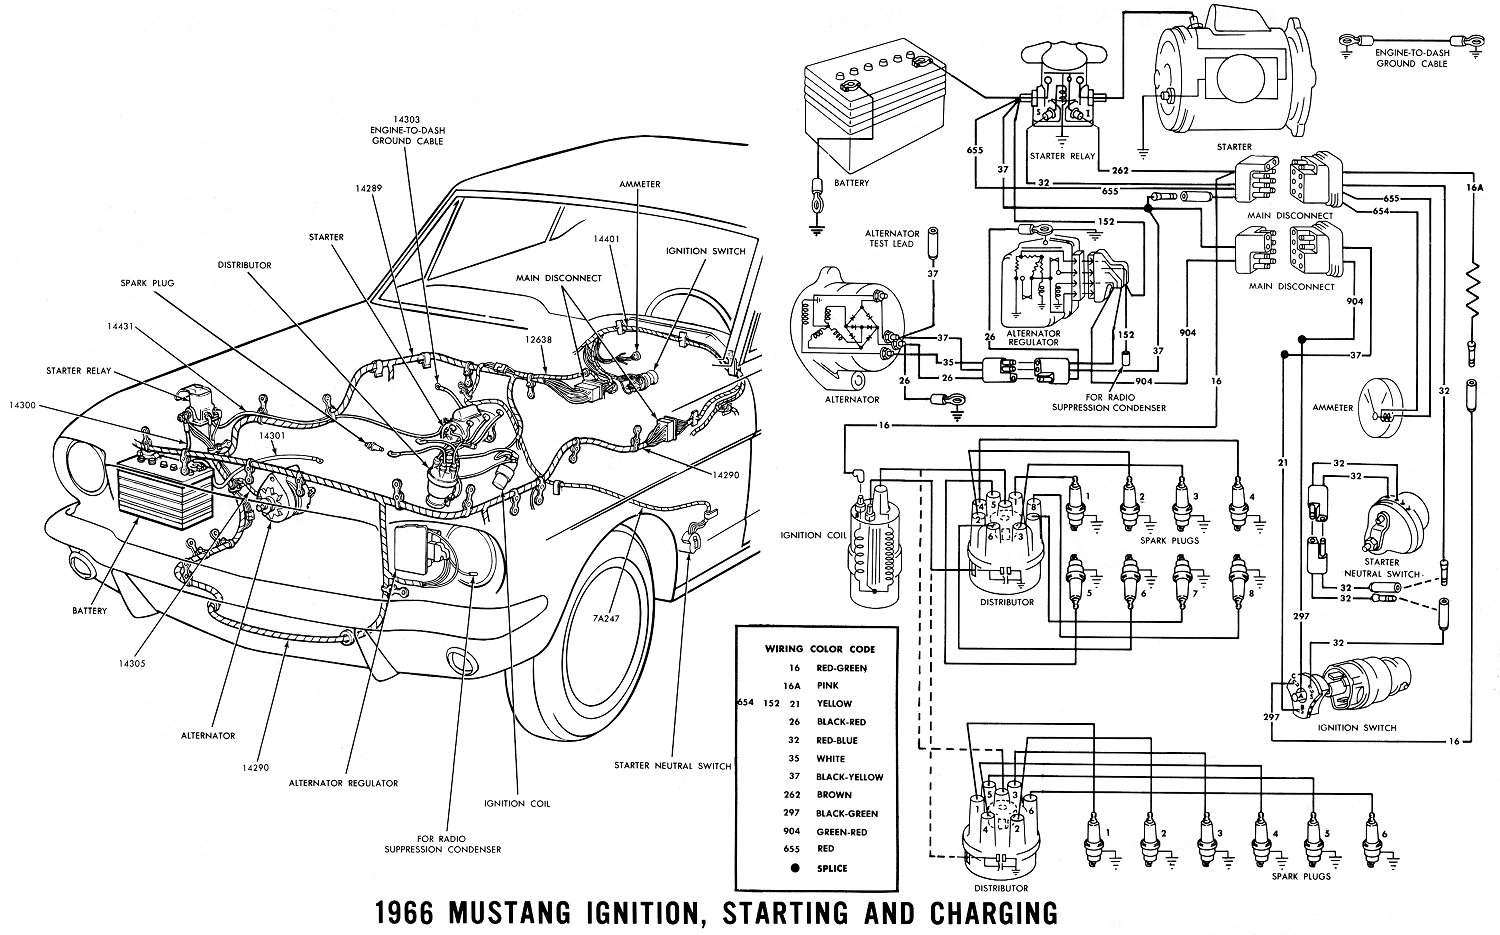 66ignit 1966 mustang wiring diagrams average joe restoration Ford E 350 Wiring Diagrams at mifinder.co